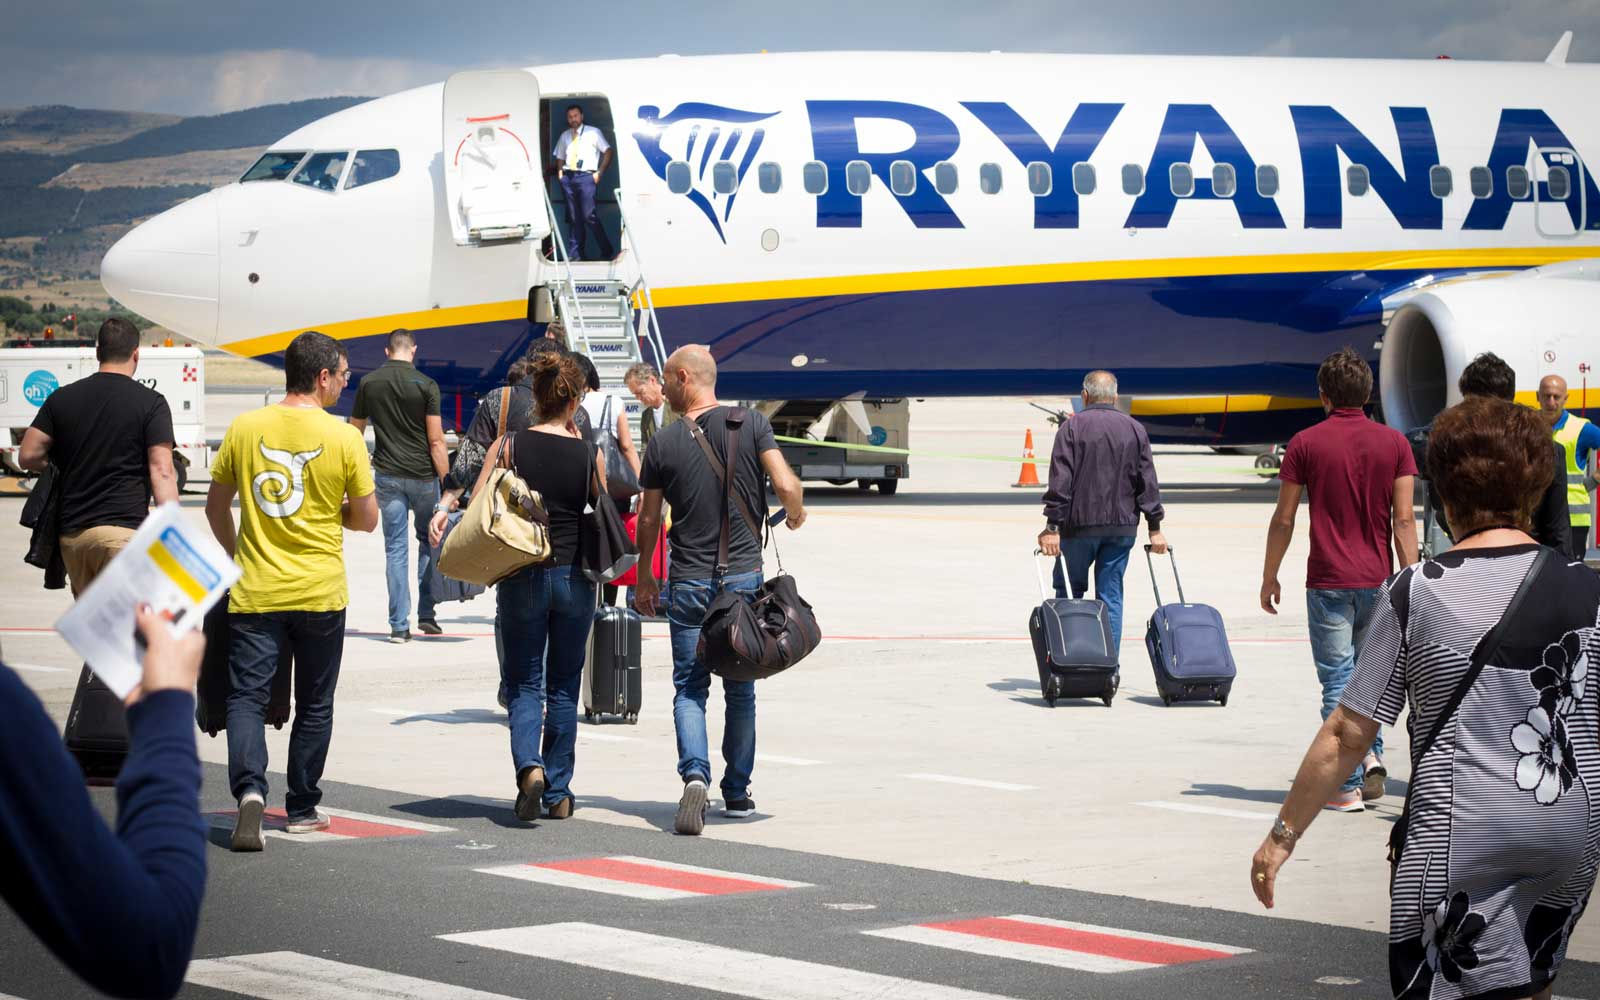 Italy Wants to Overturn Budget Airlines' Baggage Policies